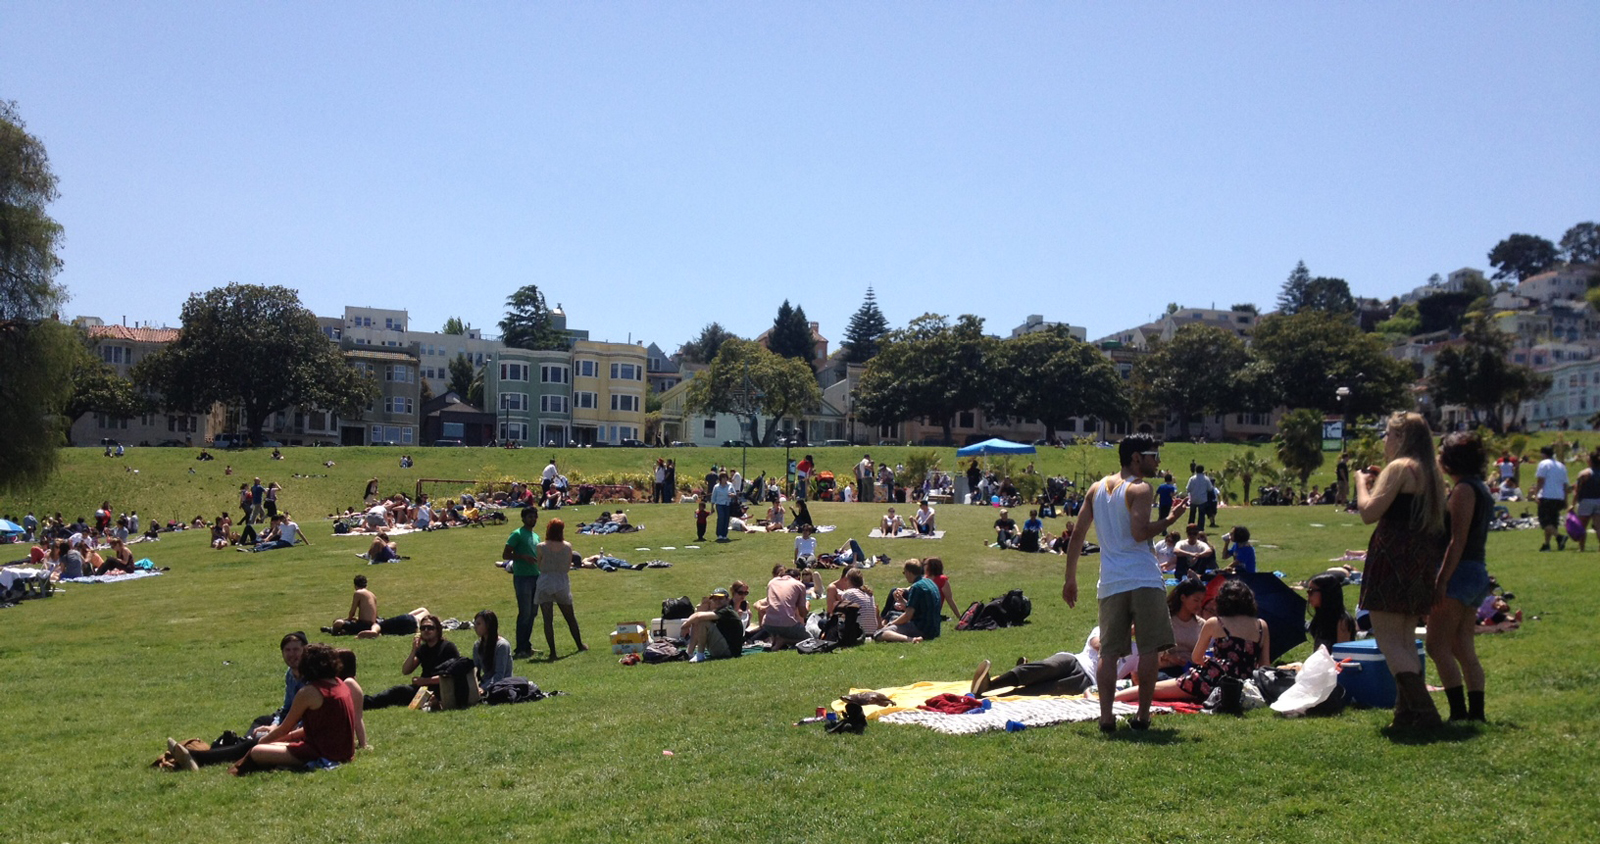 Dolores Park Video Taker Considers a Park Clean Up